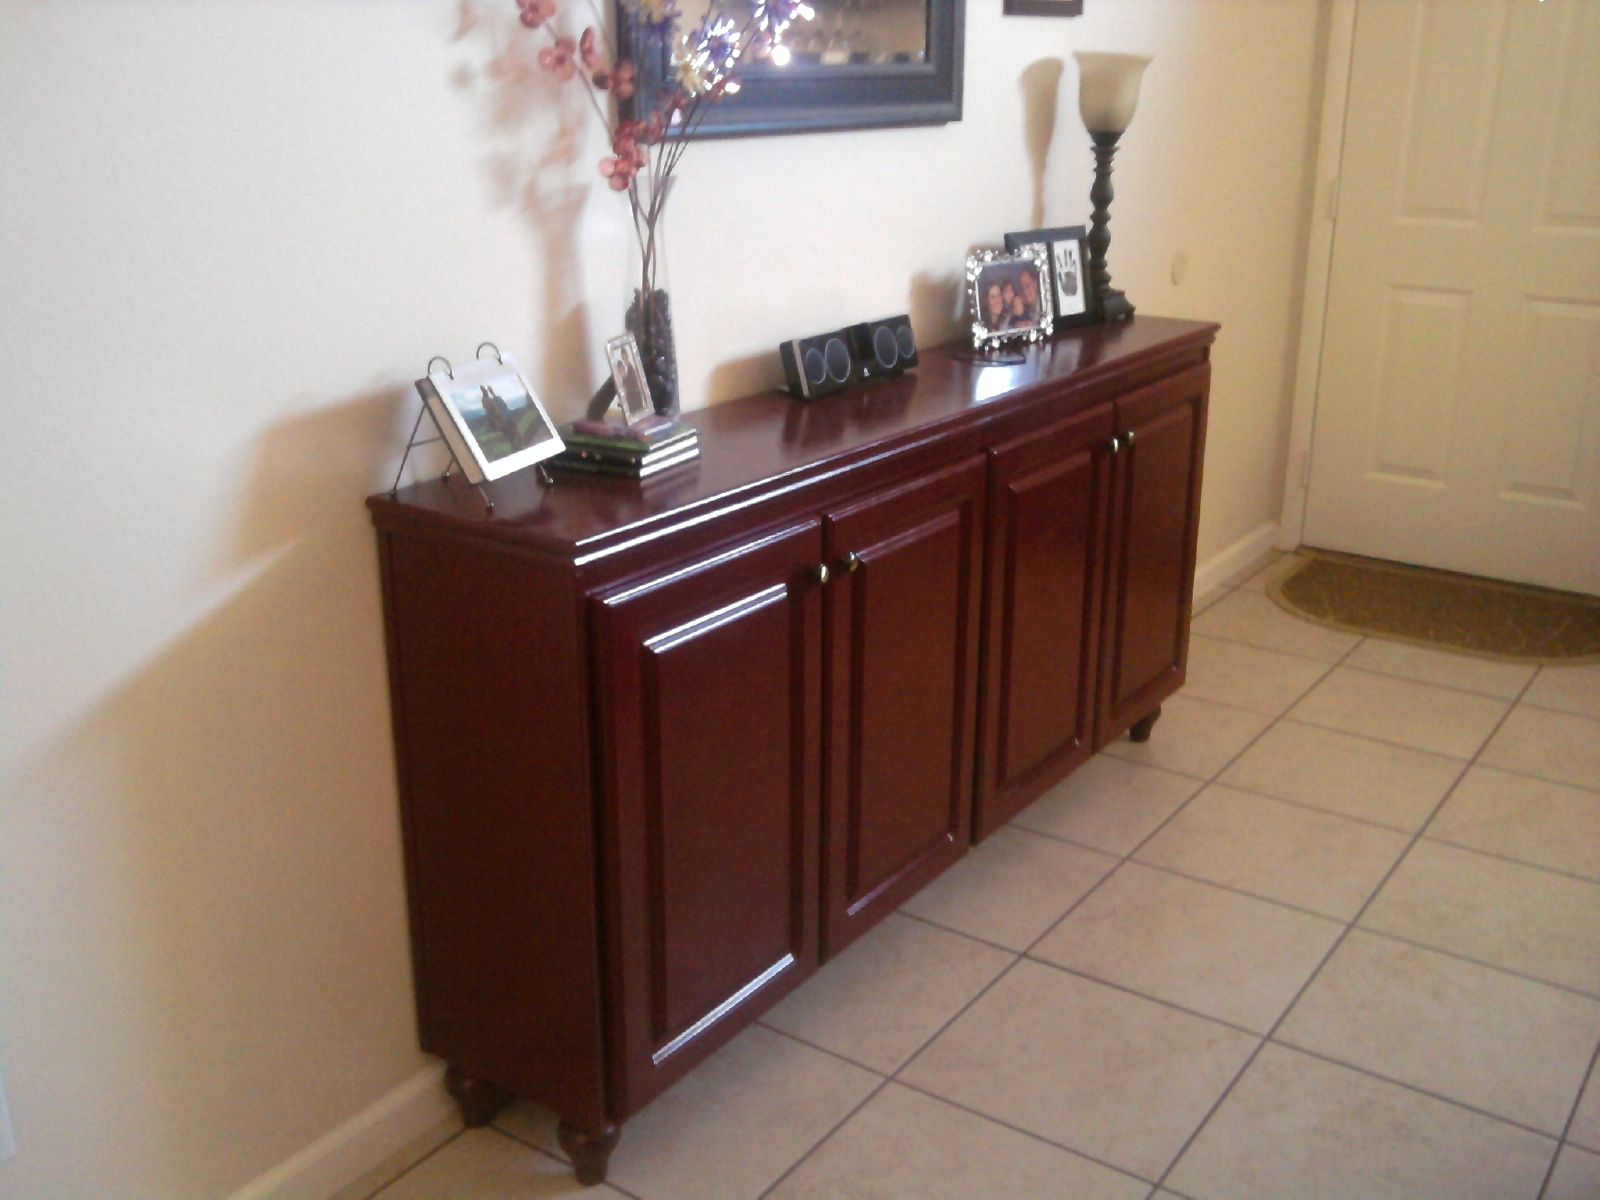 Diy entry table made from old kitchen cabinets building and